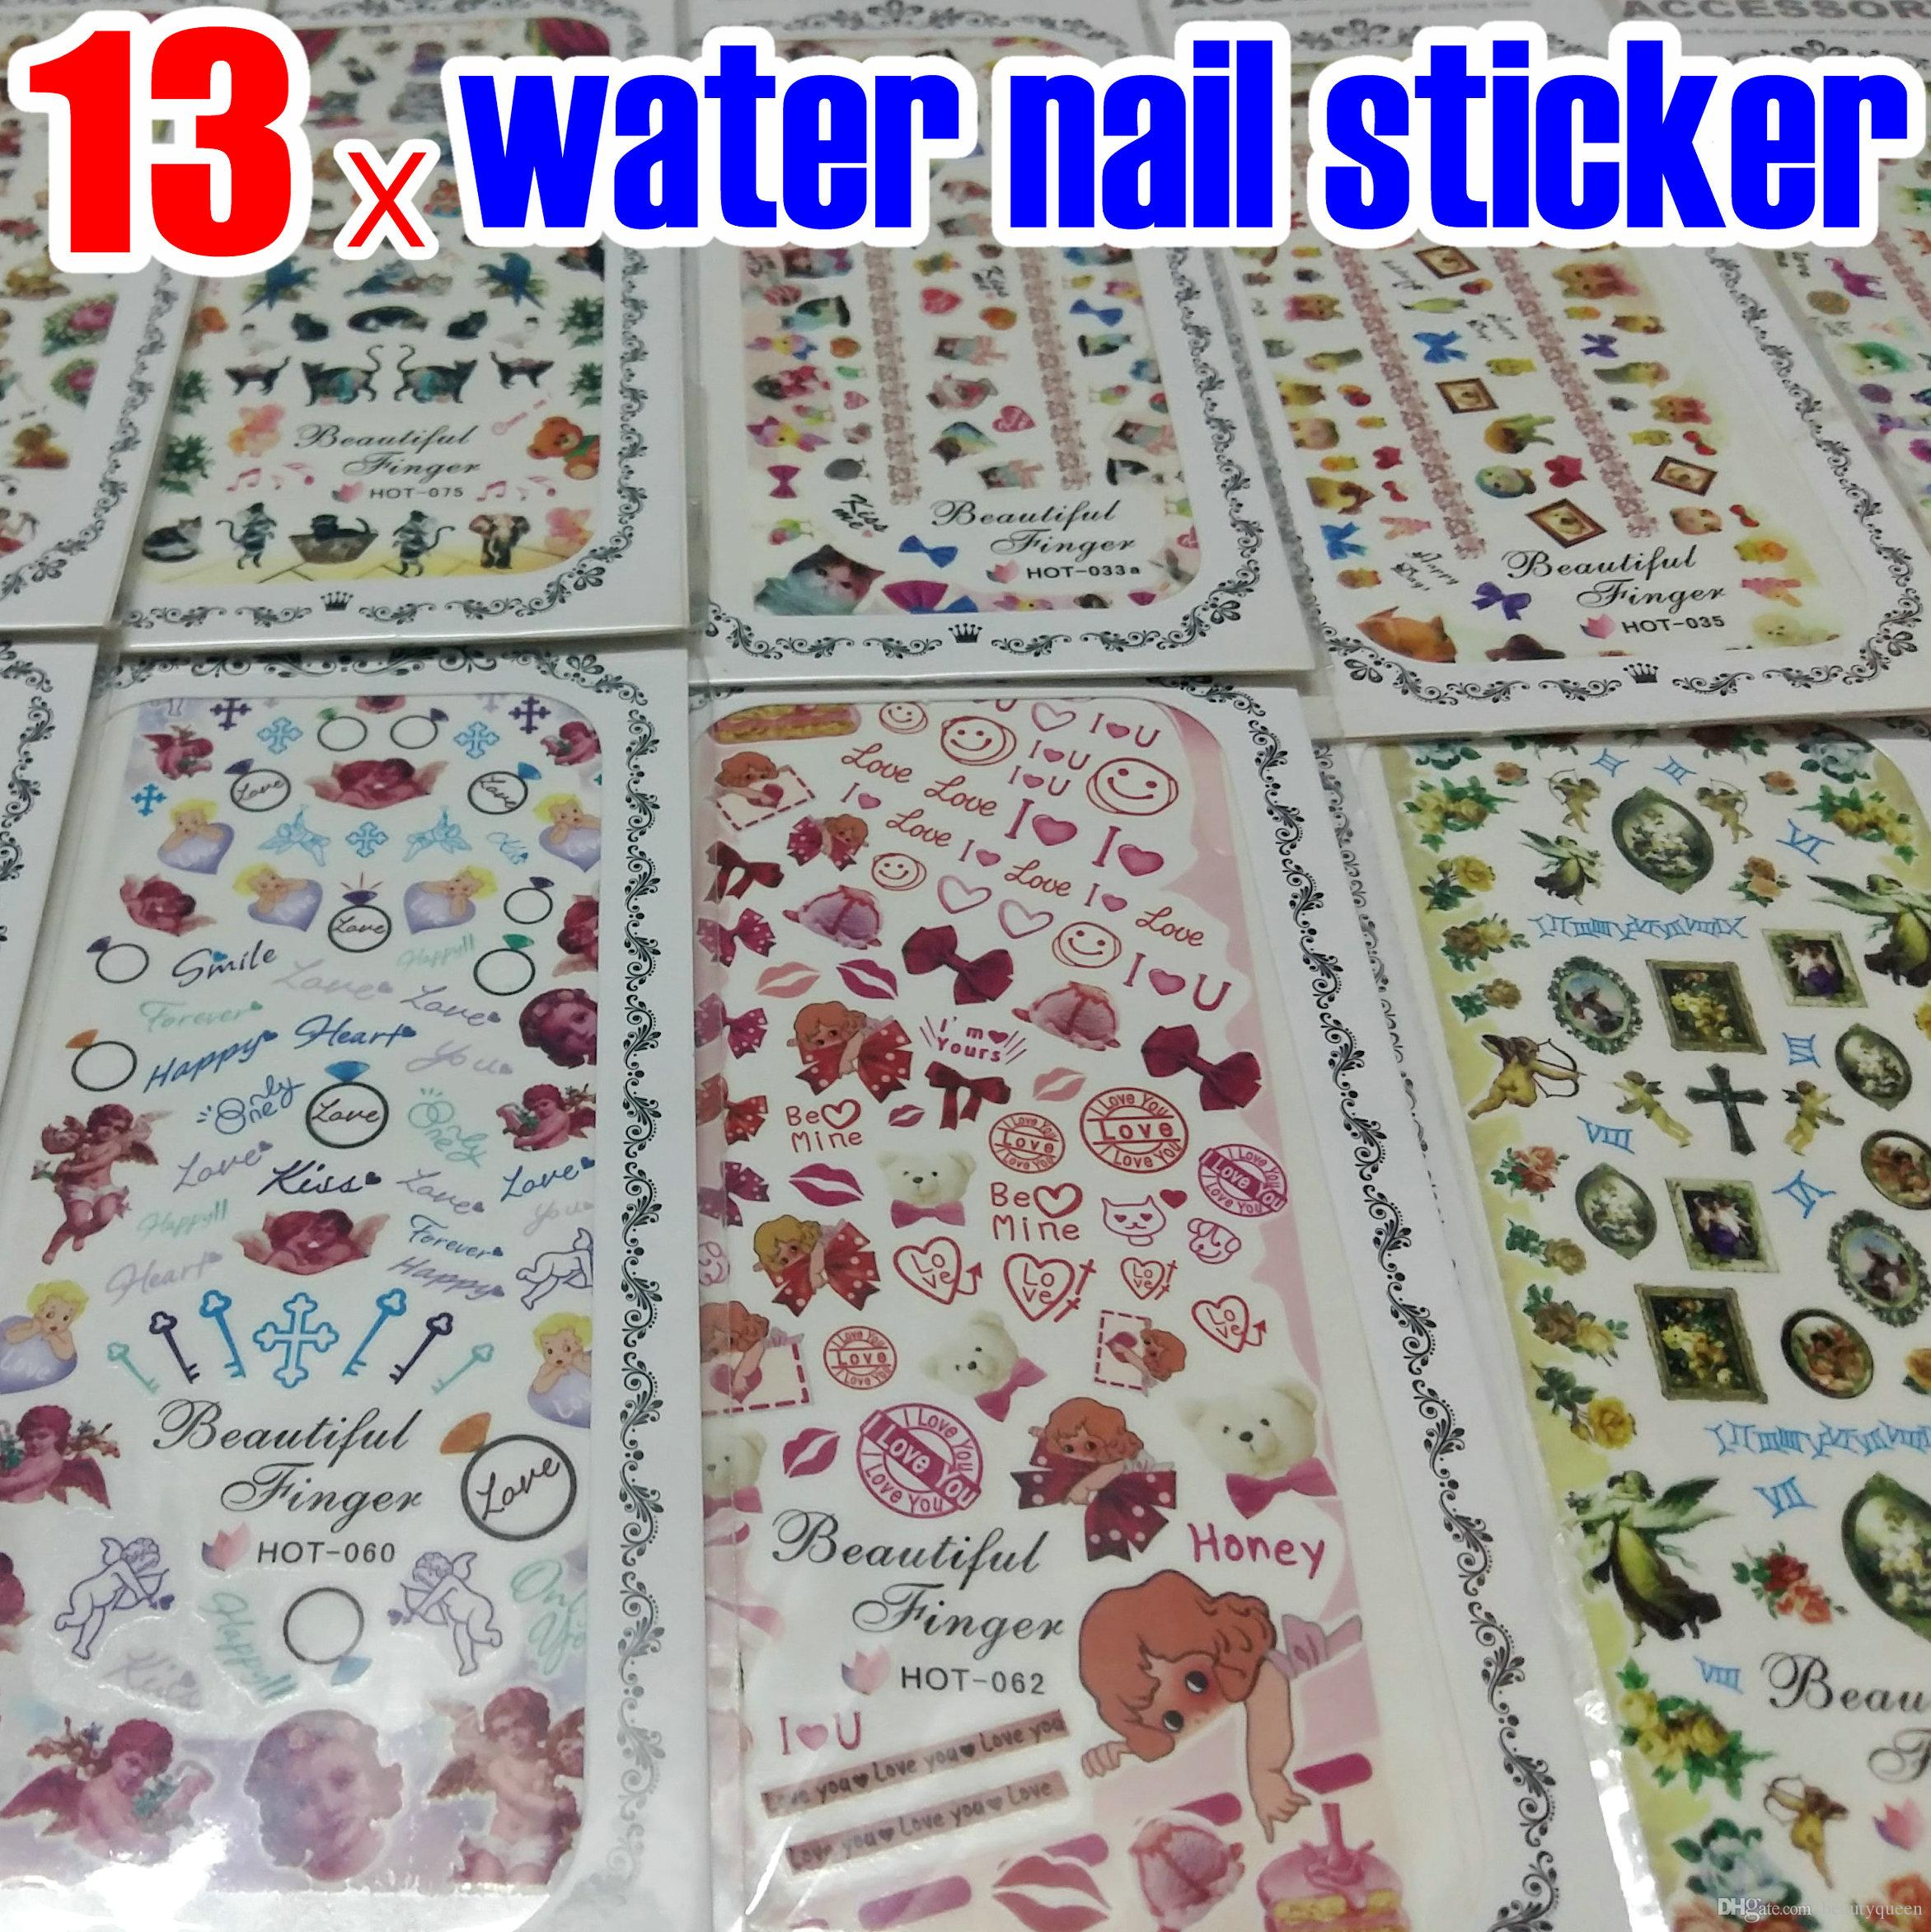 13x Nail Art Water Transfer Sticker Decal Decals Cupid Angel Pet Love Flower  Decoration Strip Wrap Wraps FOR NATURAL   FALSE NAILS Tips NEW Water Decal  ... f9b1af9acda0